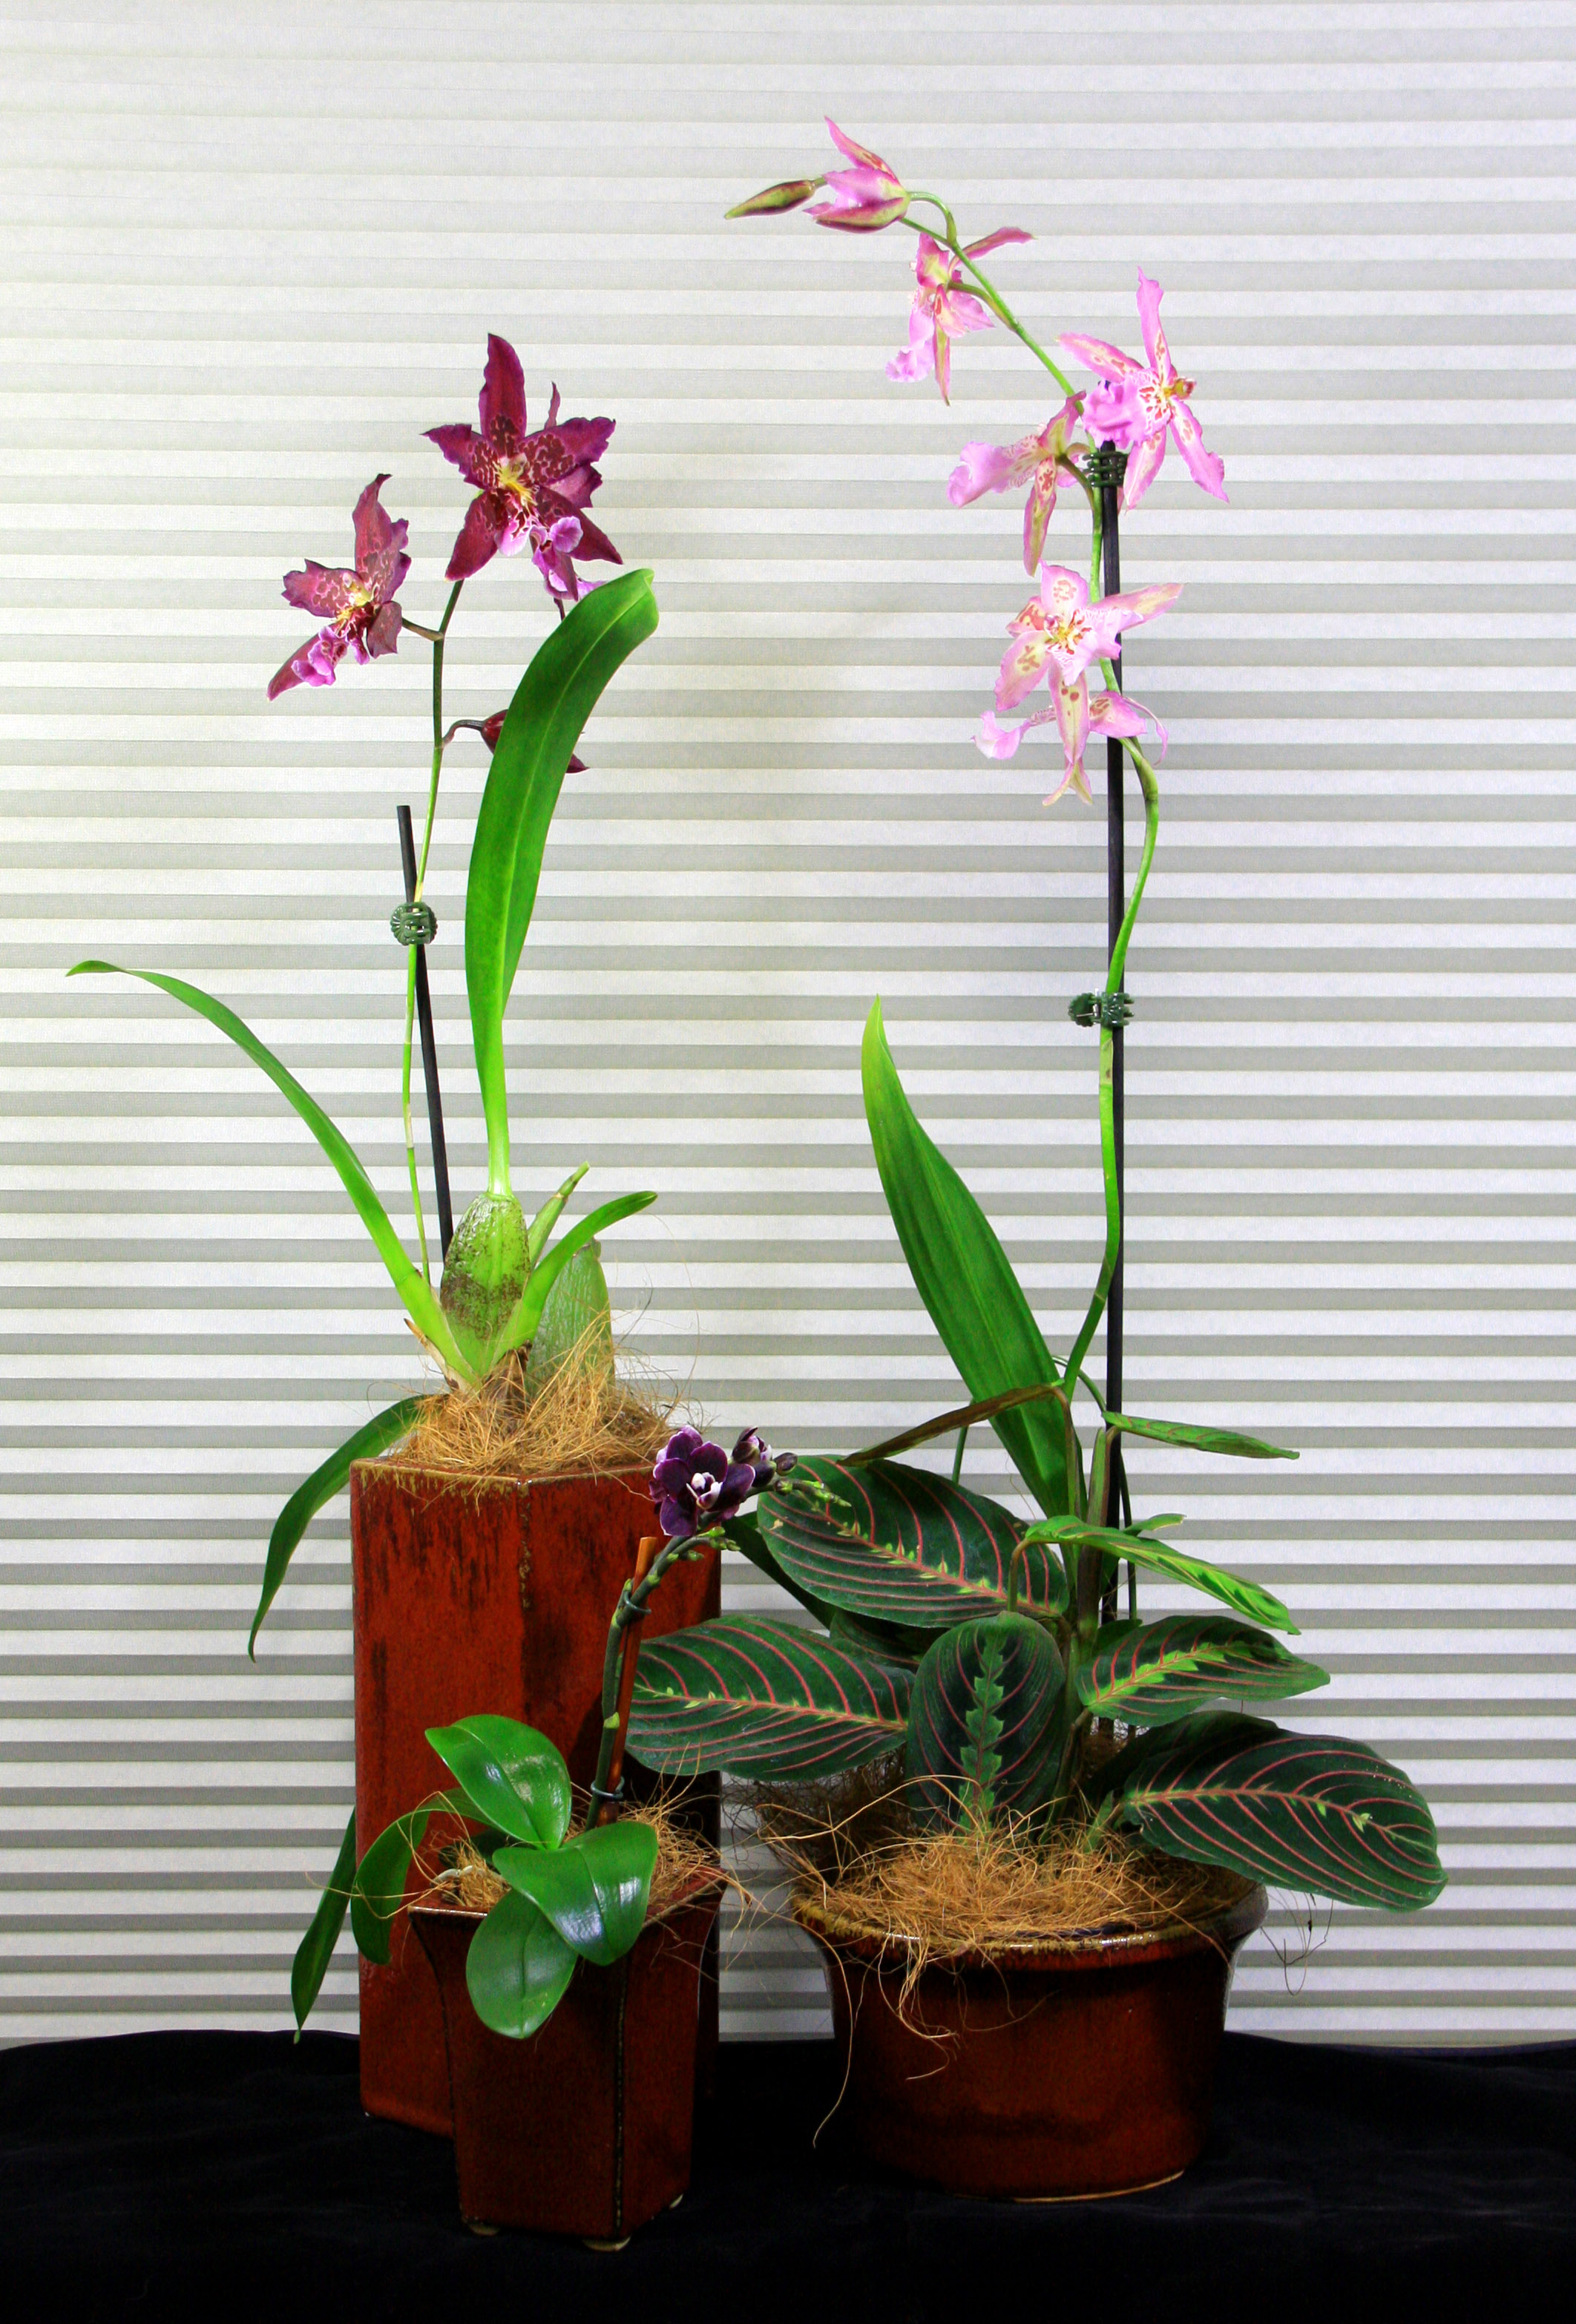 Orchid rental service for your home